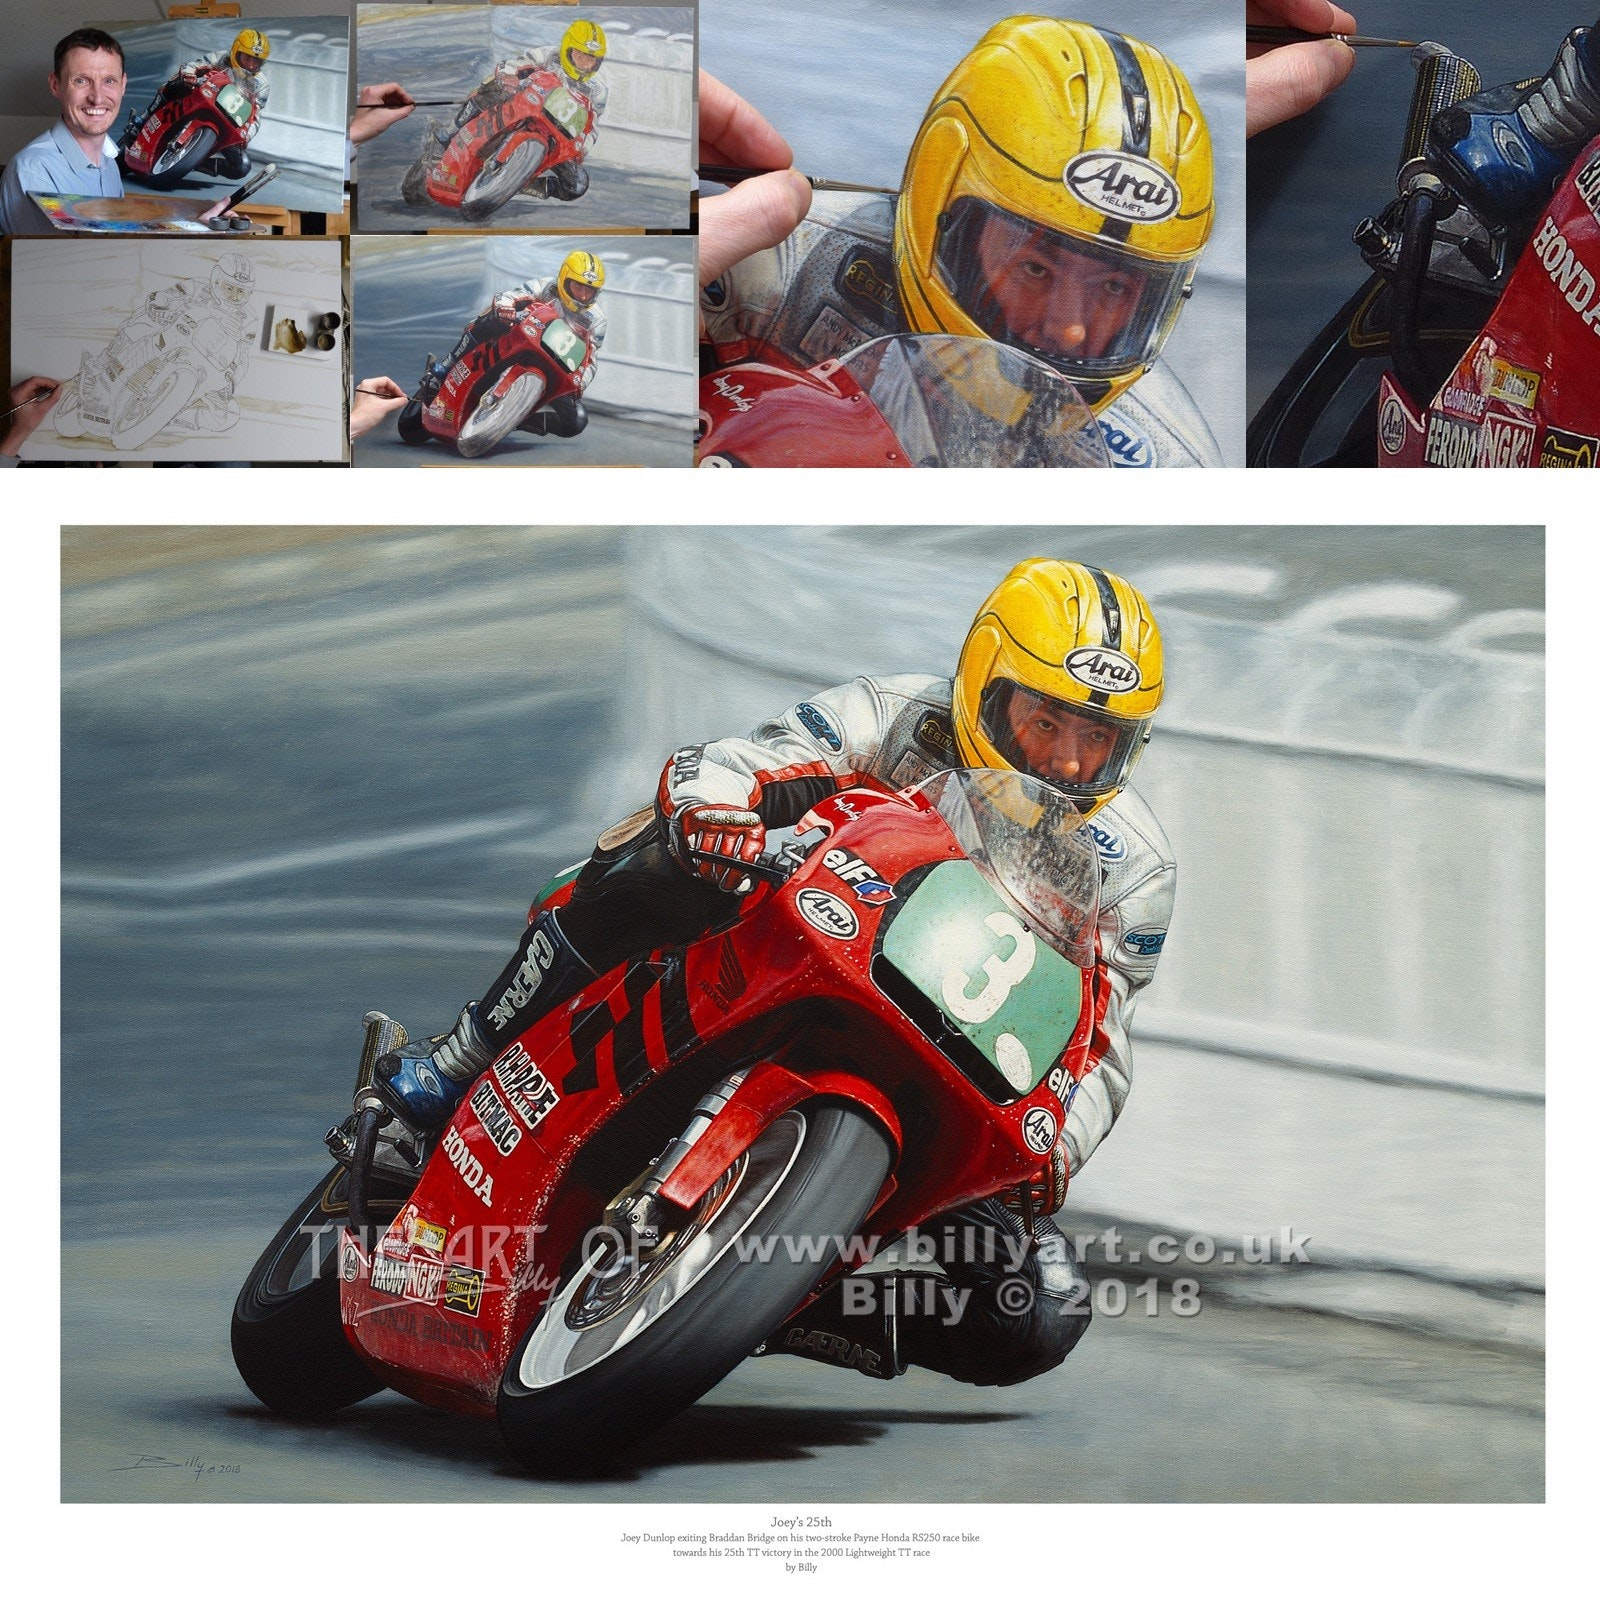 Joey dunlop   billy art